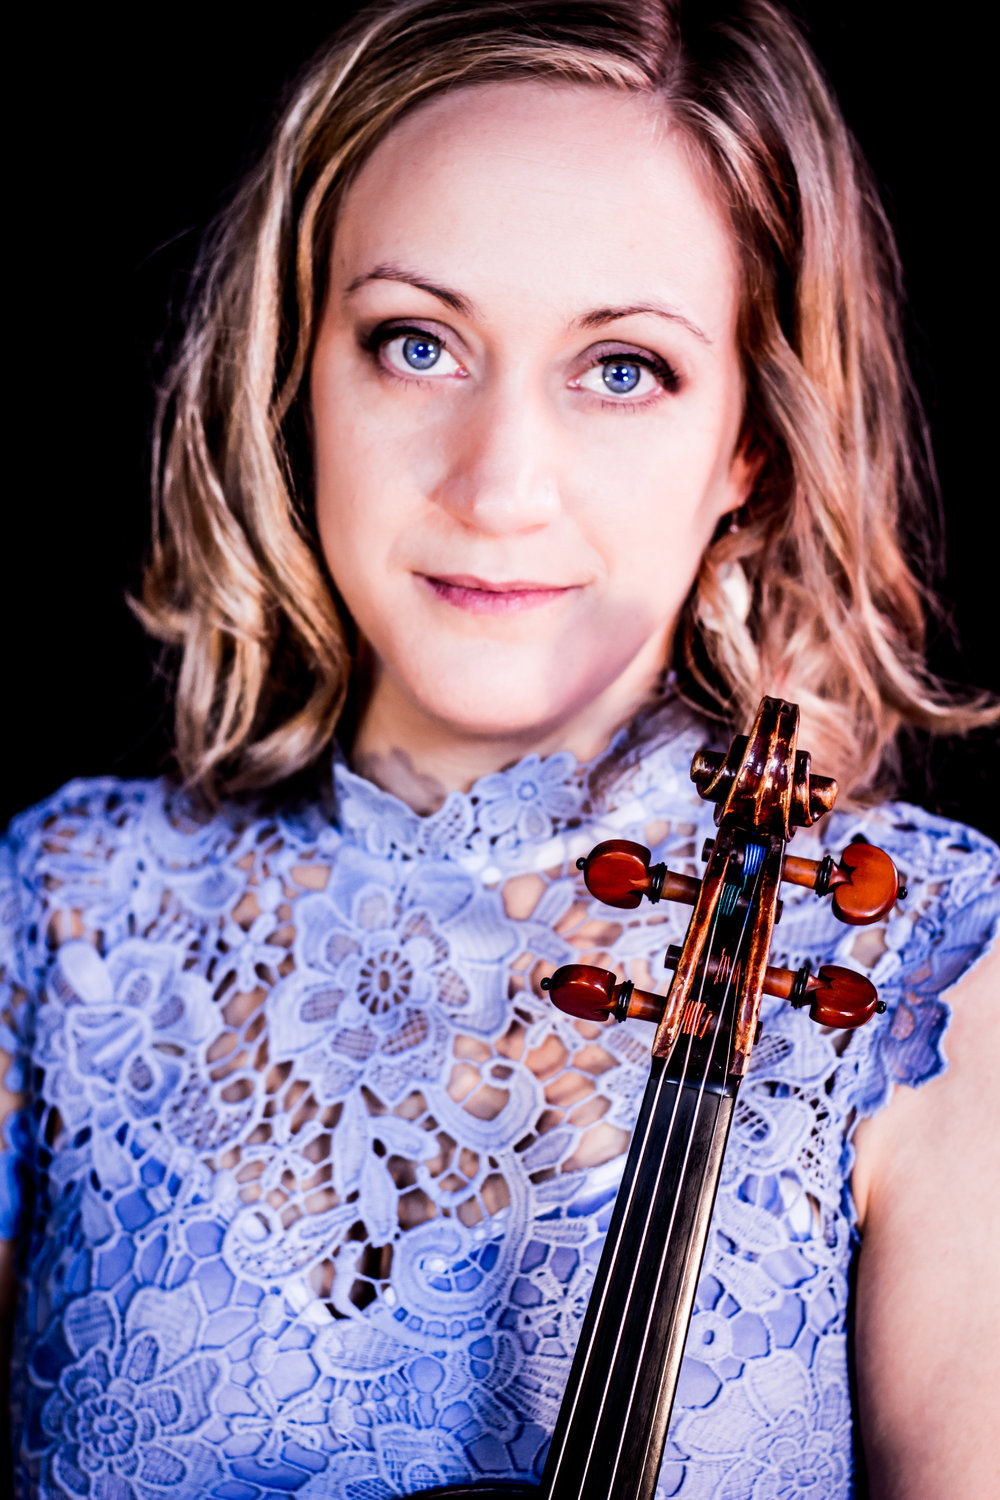 Lauren Rausch, violin     Violinist Lauren Rausch enjoys a dynamic career as an artist-teacher in the mid-Atlantic region and beyond. An active recitalist with programs this spring at Catholic University and historic Dumbarton Church in Georgetown, she performs regularly with the Baltimore Chamber Orchestra and recently represented Carnegie Hall as a teaching artist for PlayUSA, a program that supports music for children in underserved communities across the country.  A devoted performer of new music, Rausch is a founding member and Managing Director of SONAR, an award-winning ensemble based in Baltimore. She regularly appears as a soloist for Baltimore's Evolution Contemporary Music Series where she has worked with composers such as John Luther Adams, Caroline Shaw, and Missy Mazzoli. Her advocacy of new music extends to her teaching. Rausch encourages students of all levels to perform new music, and she will present on this topic at the national conference of the American String Teachers Association in Pittsburgh this spring.  Rausch is on the faculty at the Peabody Preparatory where she also serves as Assistant Director of the Young Peoples' String Program. In her role as Coordinator of the Tuned-In Strings program, she partners with the Baltimore Symphony's ORCHKids program to bring promising young students from the city to study at Peabody. Rausch was recently appointed Director of Allegro Strings, a summer program for string students with campuses in Towson and Howard County. She also maintains a successful private studio and regularly leads workshops for young string students in throughout the region. In addition to her work with pre-college musicians, she serves as an instructor at the Peabody Conservatory and at the Krieger School of Arts and Sciences at JHU. Rausch holds degrees from the Peabody Conservatory, the University of Oregon, and Arizona State University, and has performed at major festivals throughout North America.